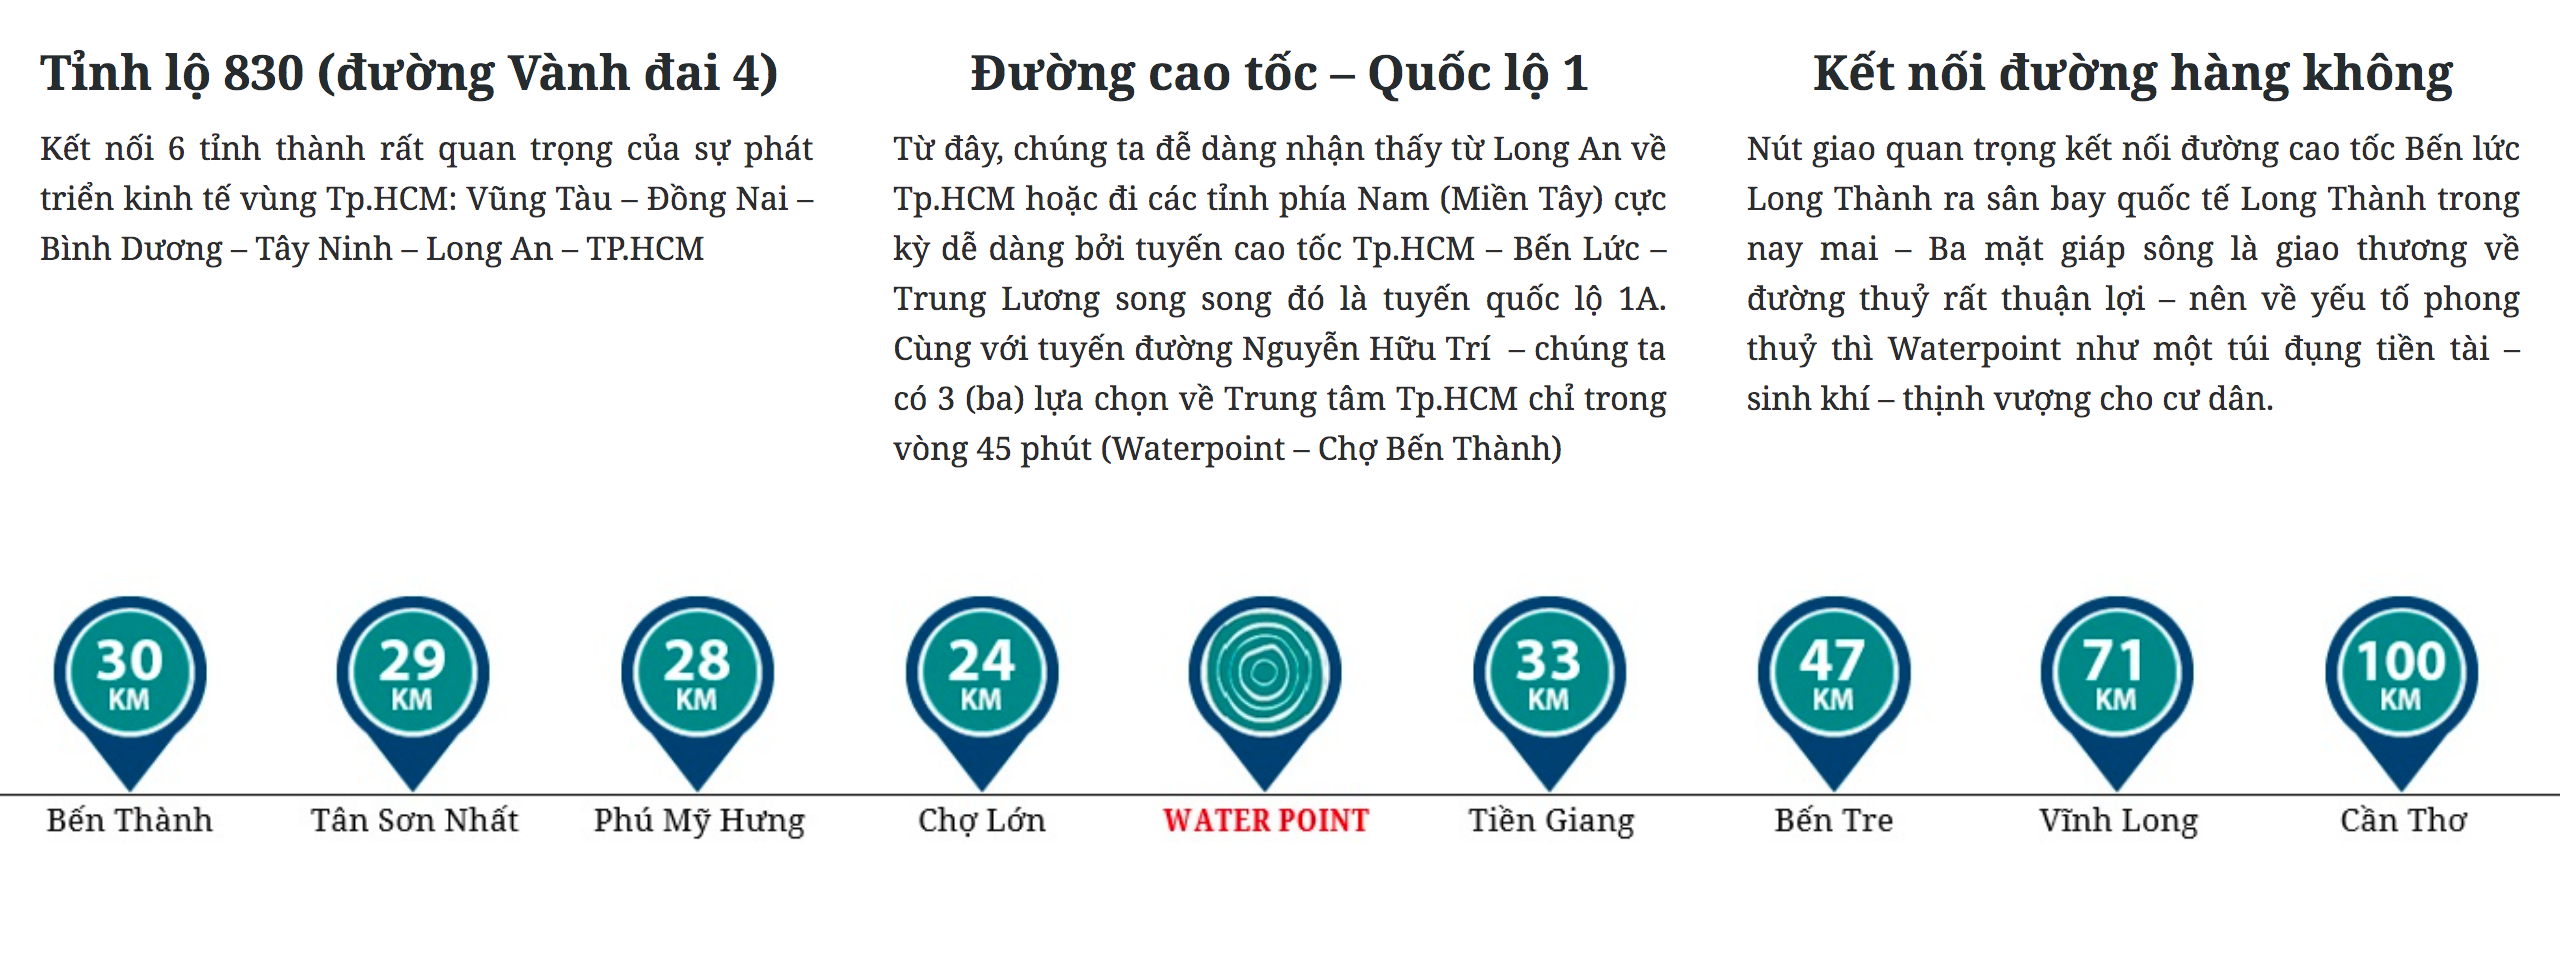 Vị trí Waterpoint